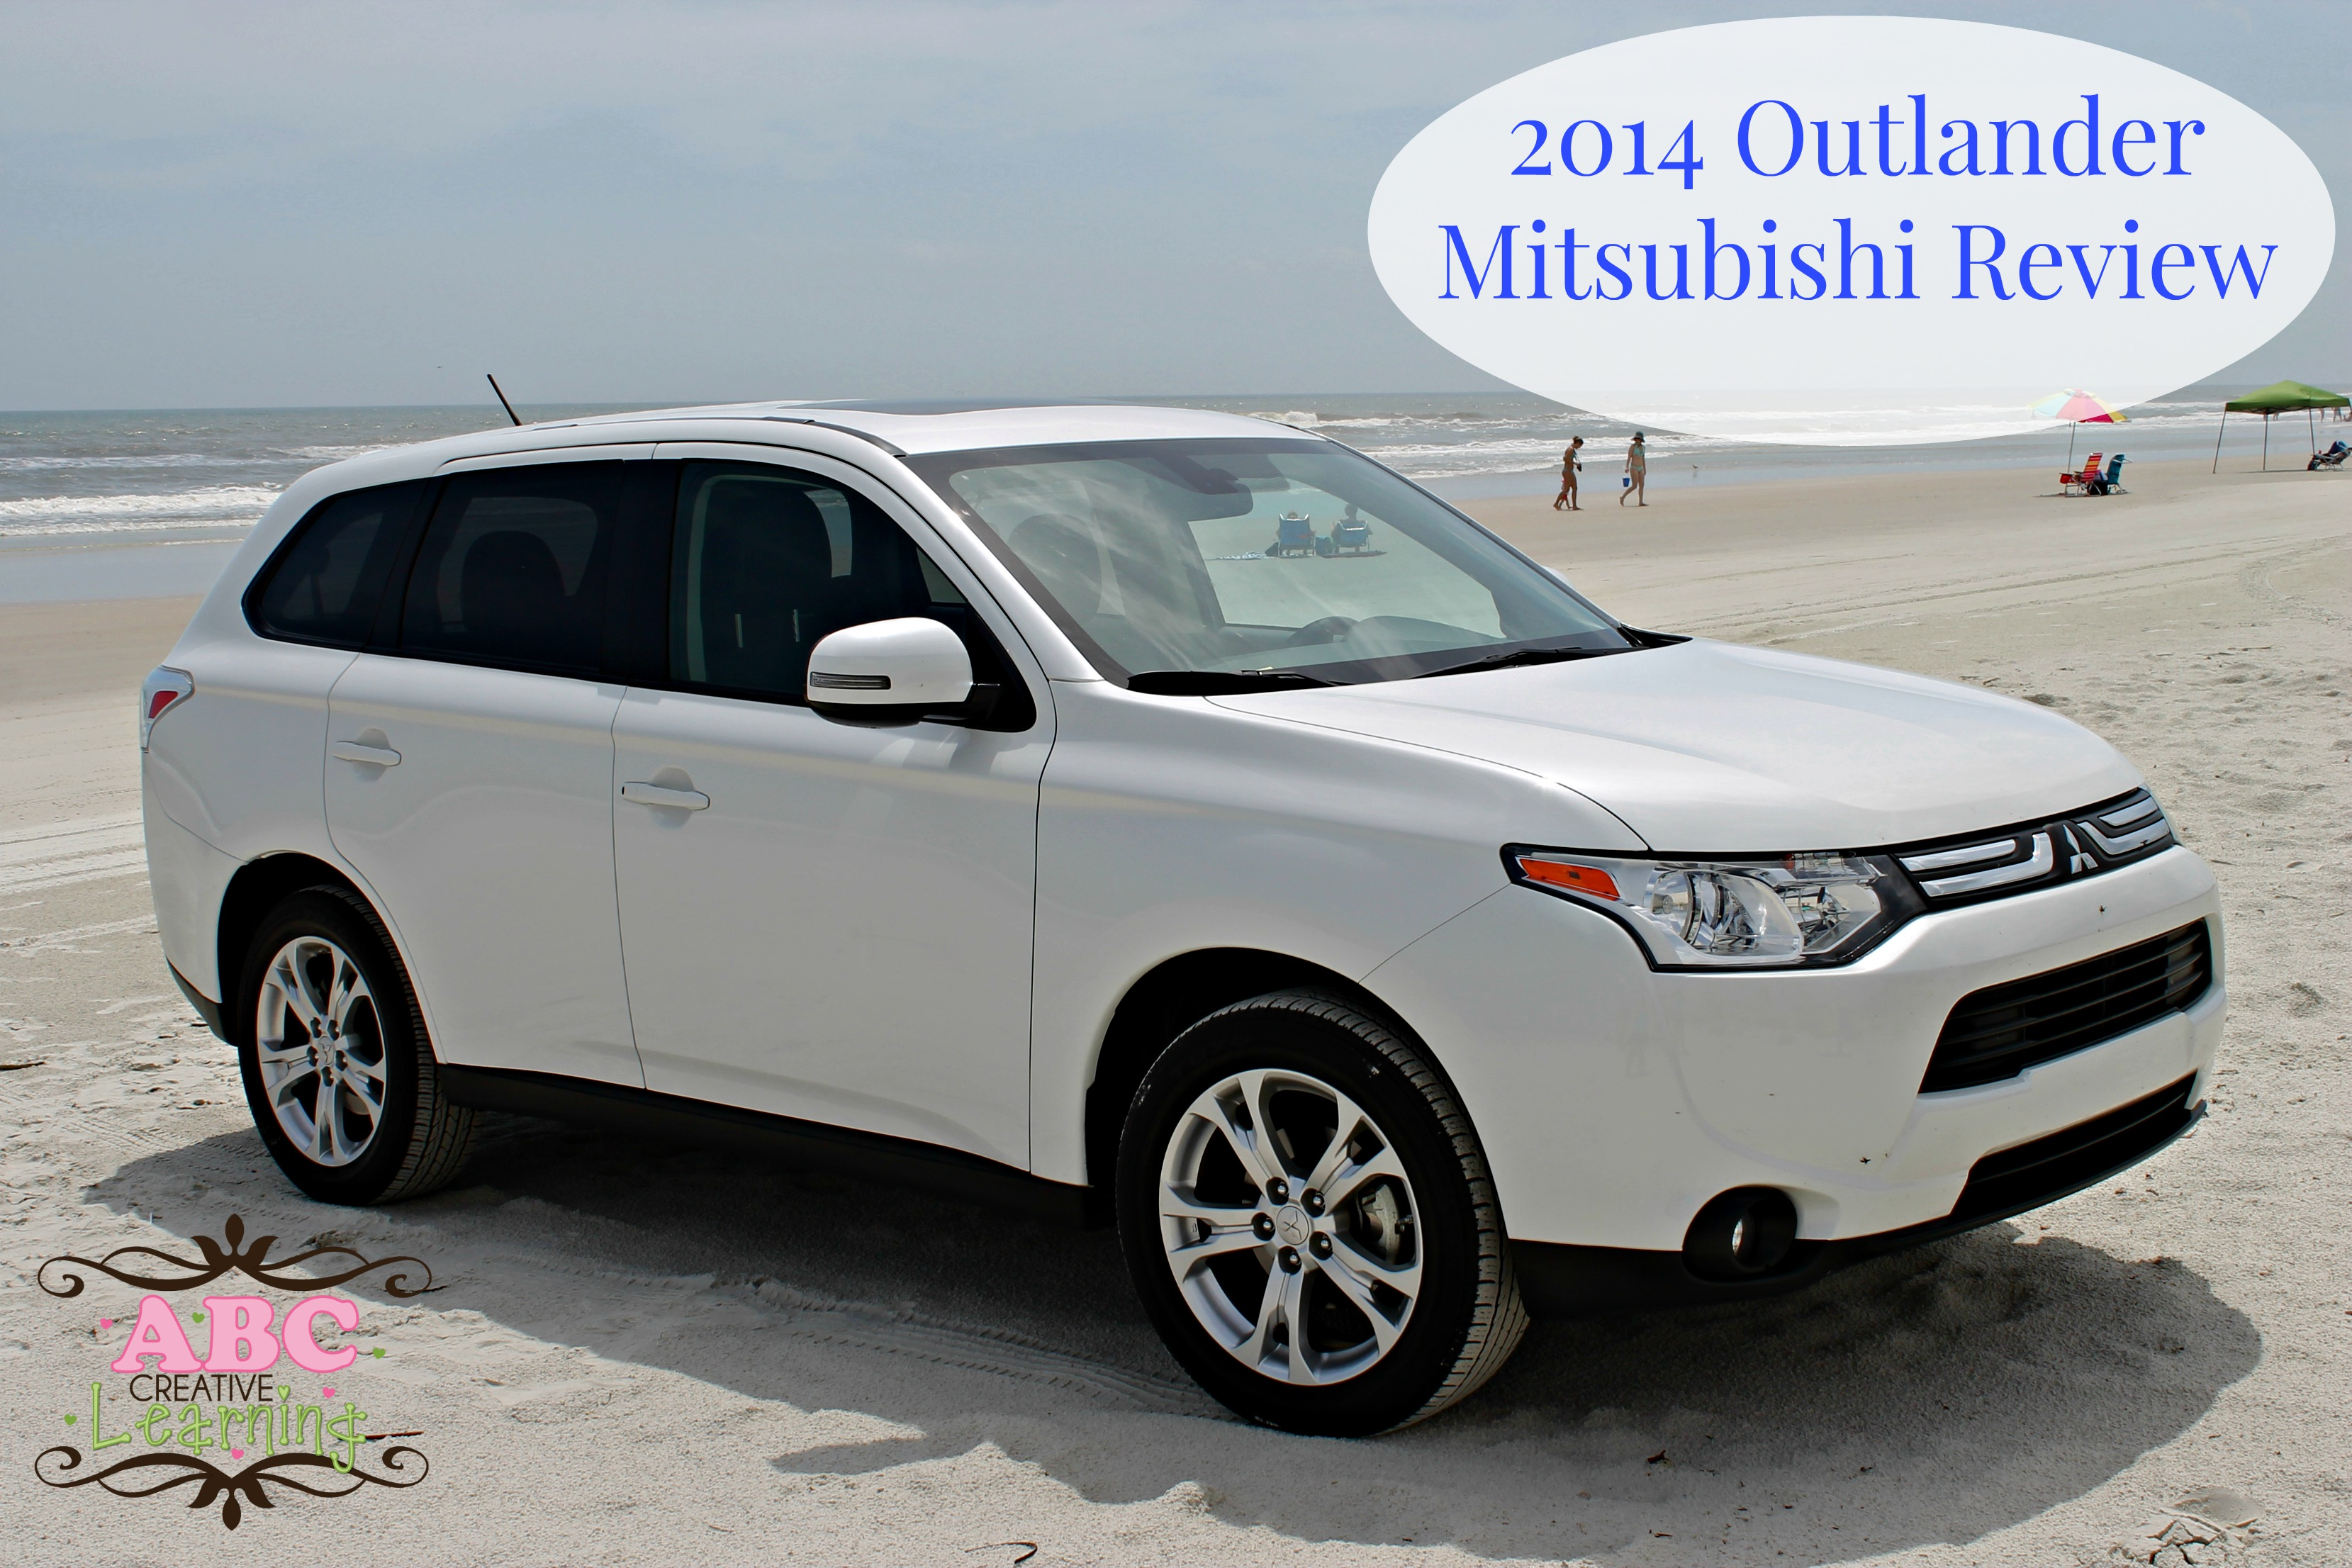 s awc notes se left car article reviews review mitsubishi img autoweek outlander